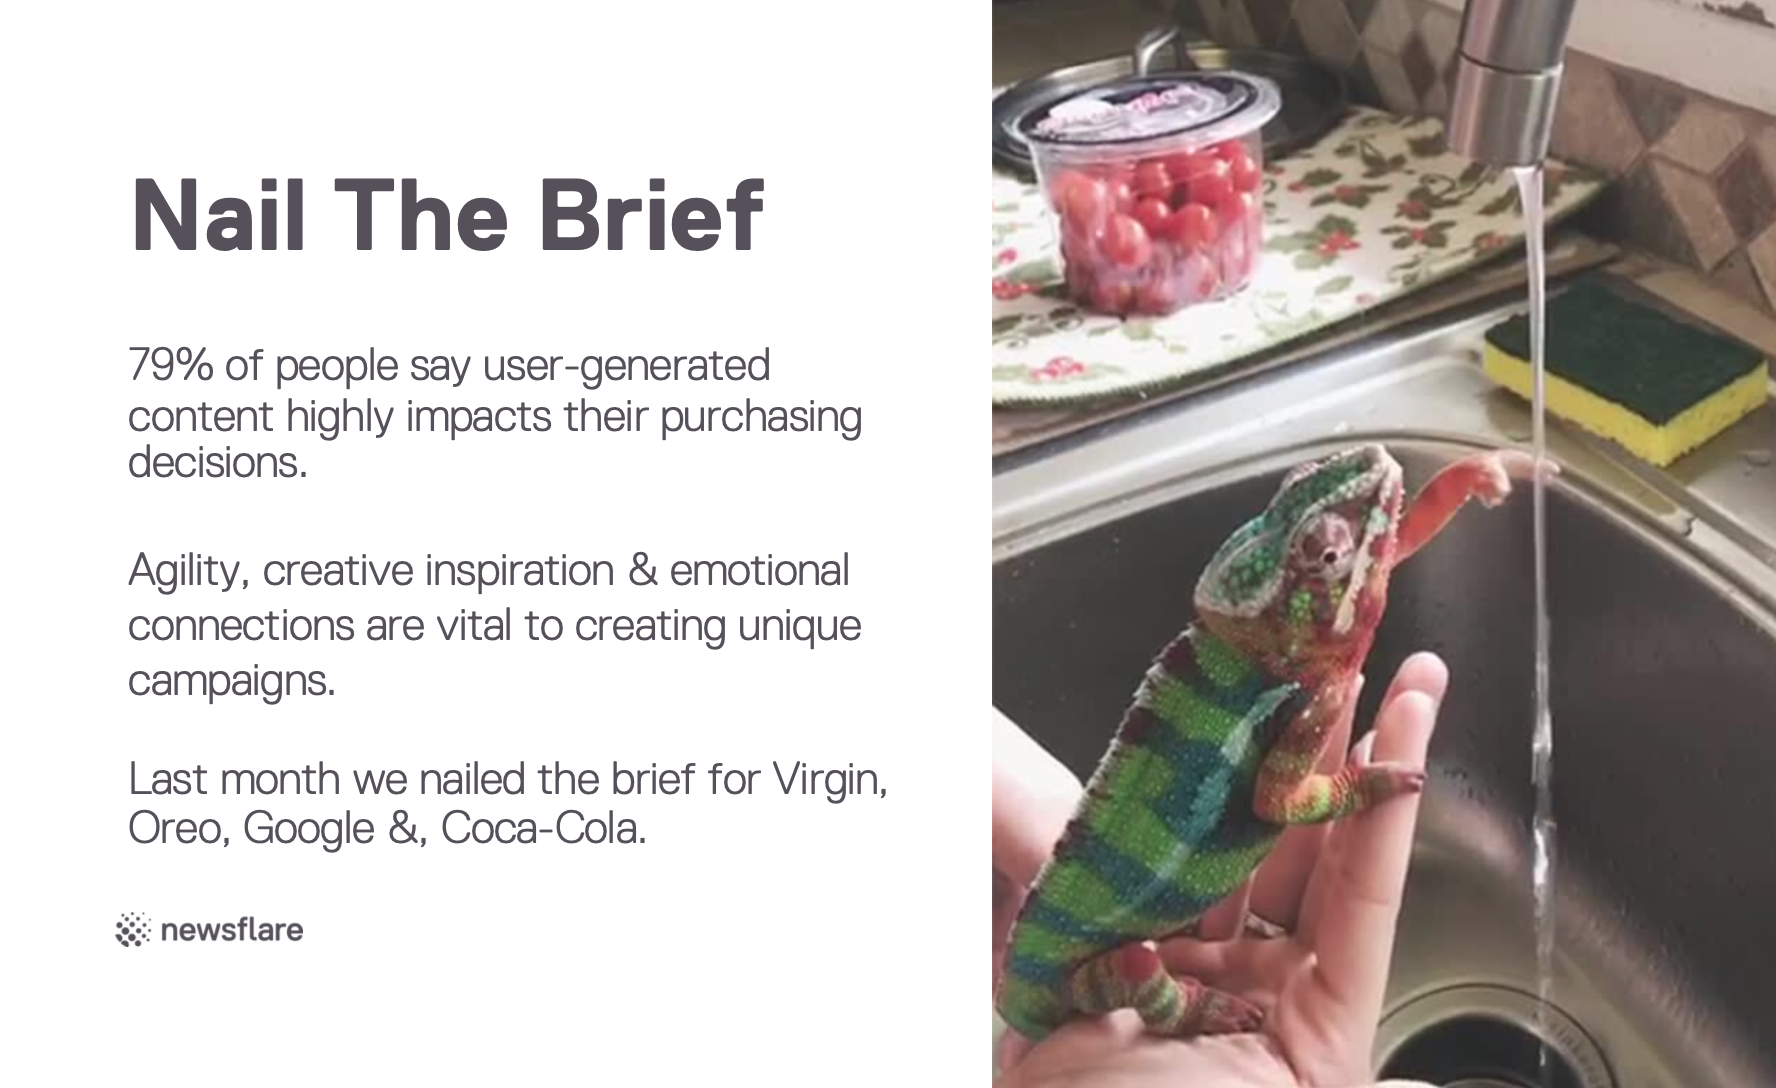 Four brands that successfully filled the creative content gap during COVID-19